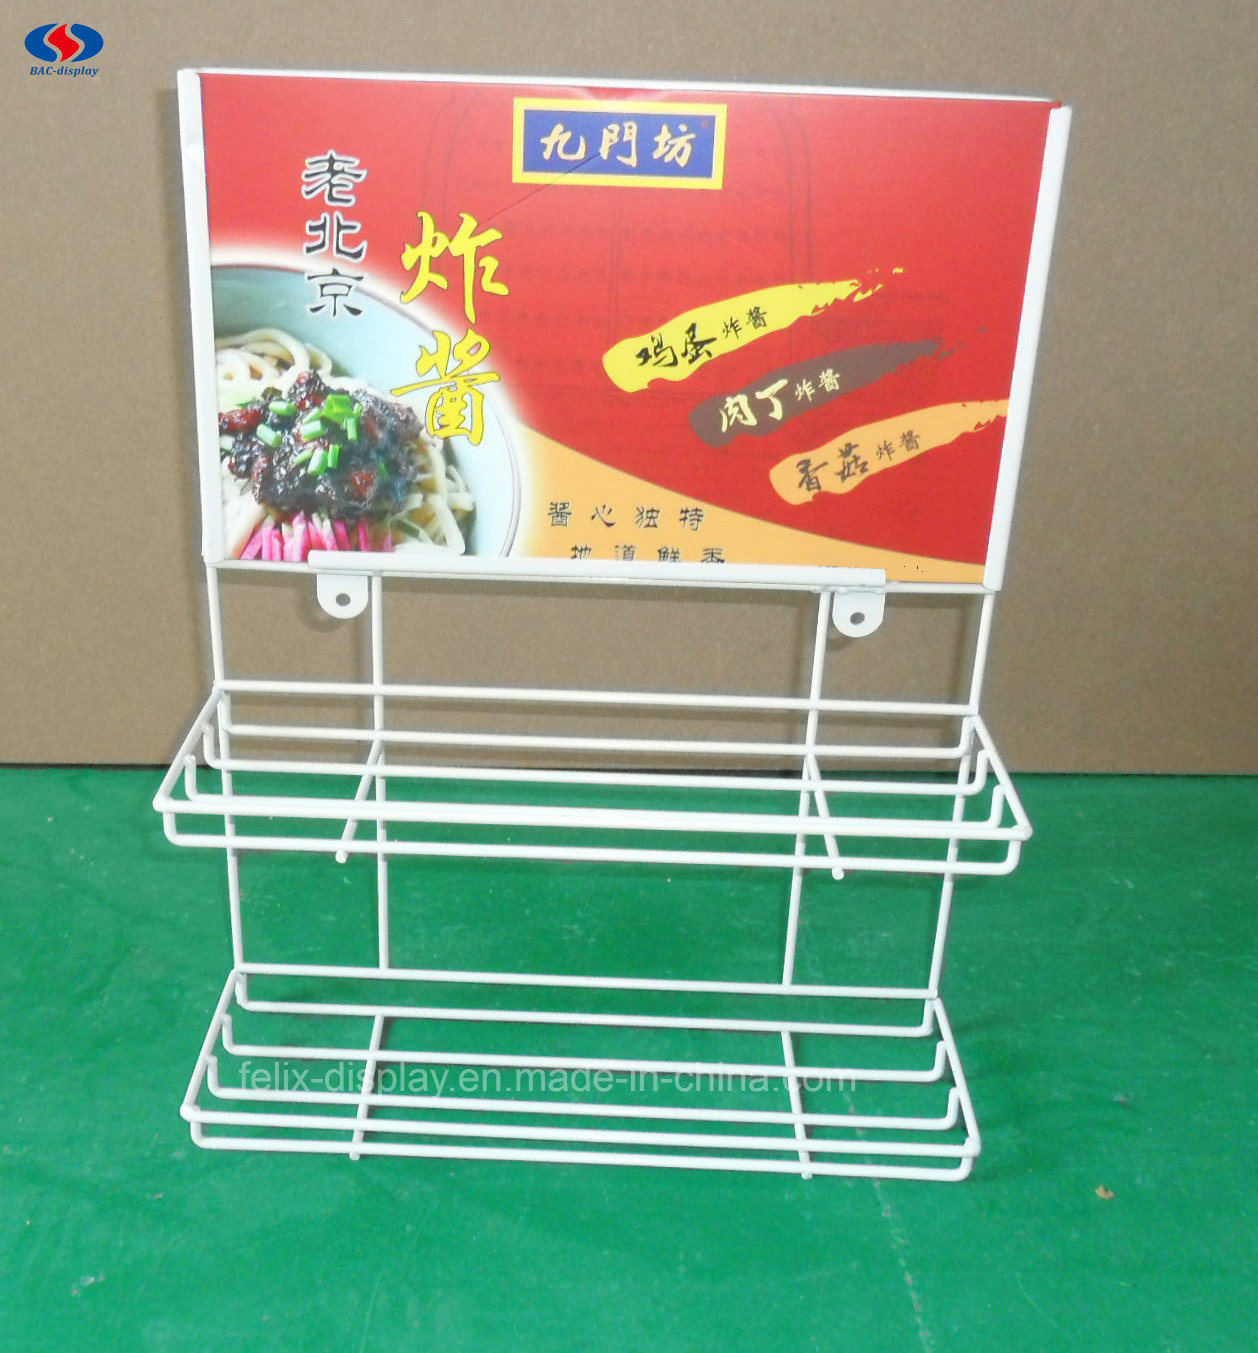 tray cardboard displays rack snack stands how to shelf compartment attract retail your floor customer display